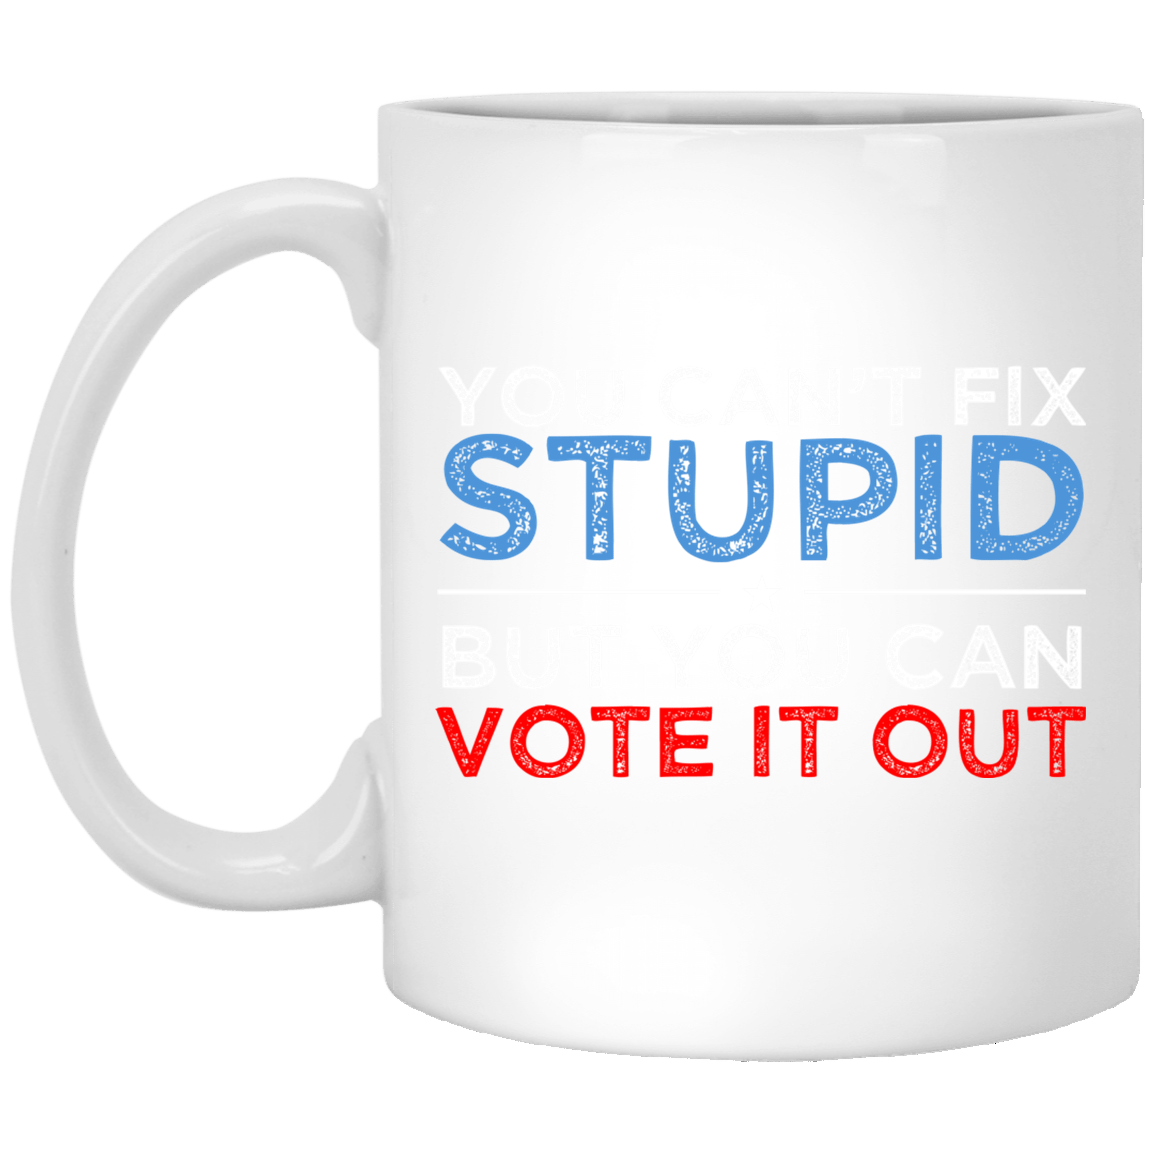 You Can't Fix Stupid But You Can Vote It Out Anti Donald Trump Mug 1005-9786-88282889-47417 - Tee Ript